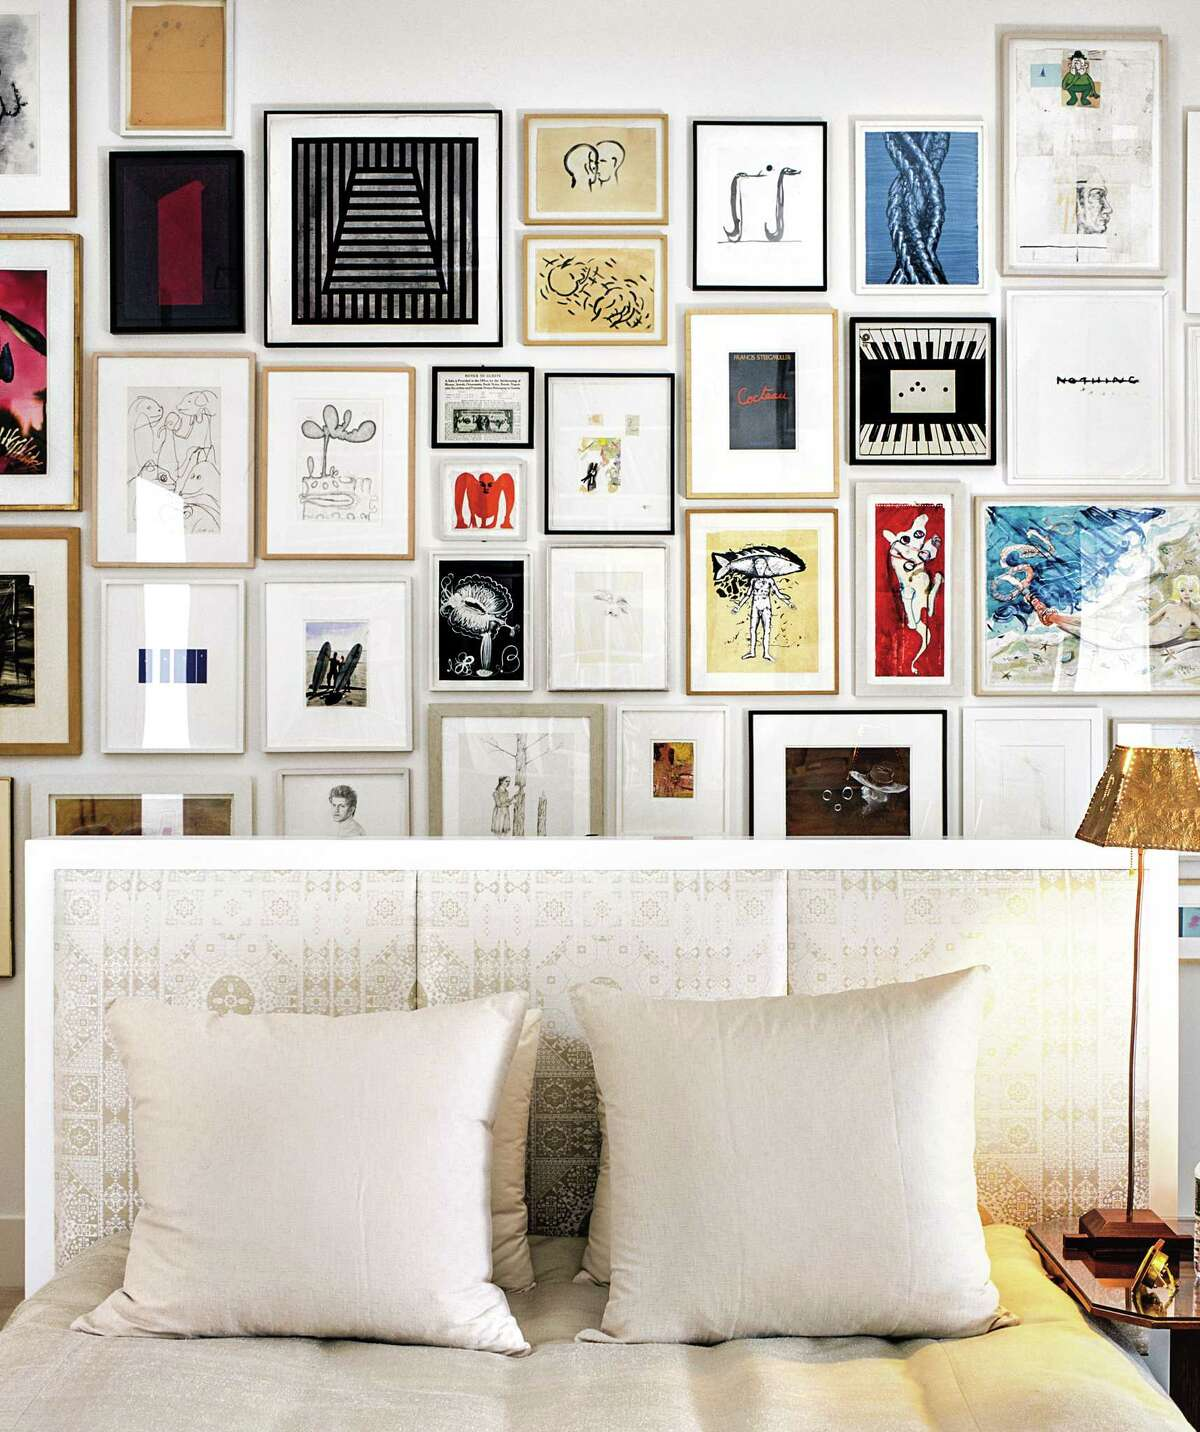 A salon-style art wall serves as a backdrop for the custom floating bed with a headboard upholstered in Casablanca silk by Rubelli.